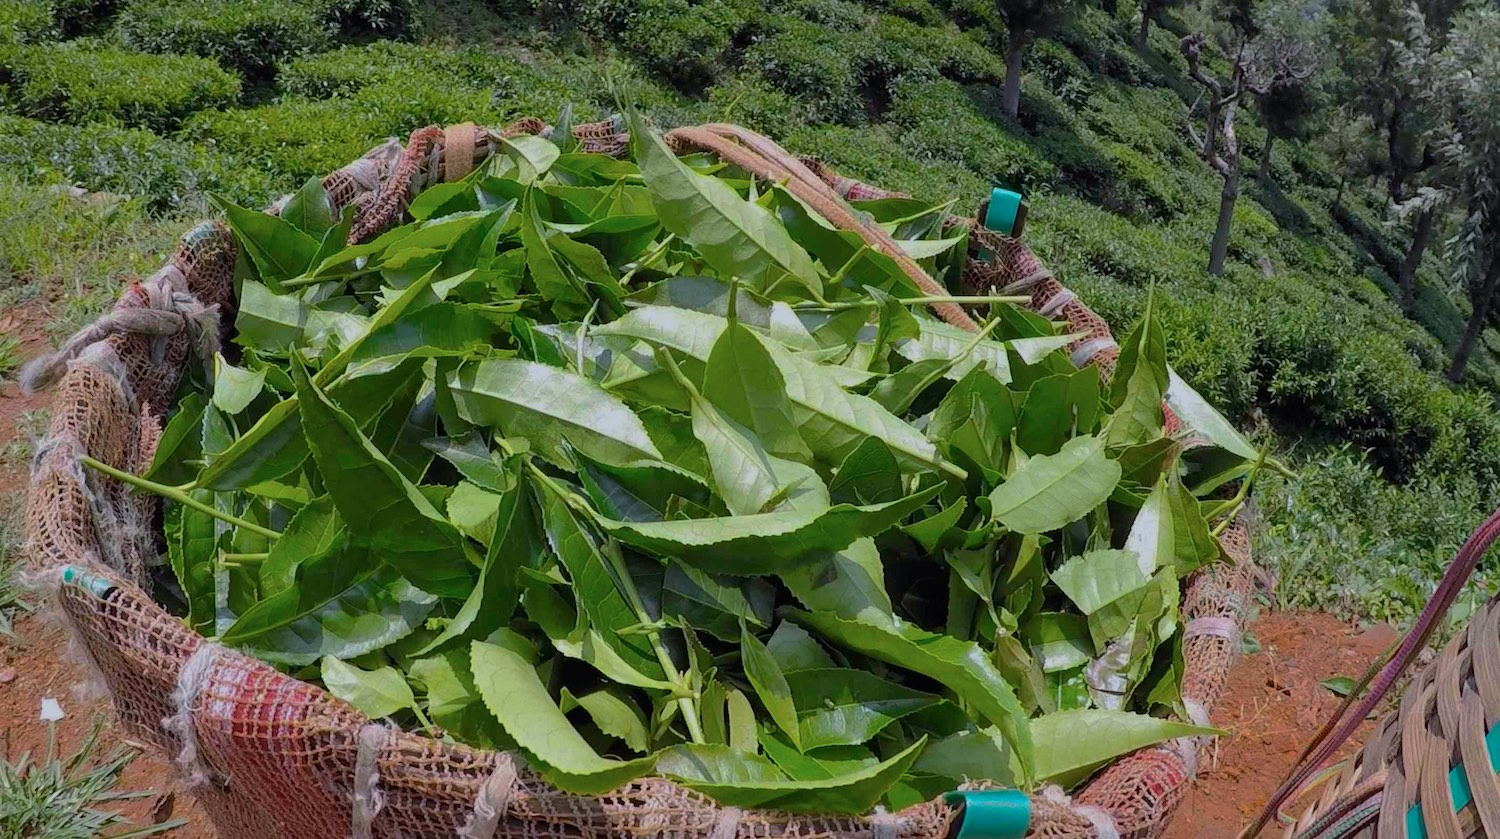 Green tea harvested. © Applied Food Sciences, Inc.